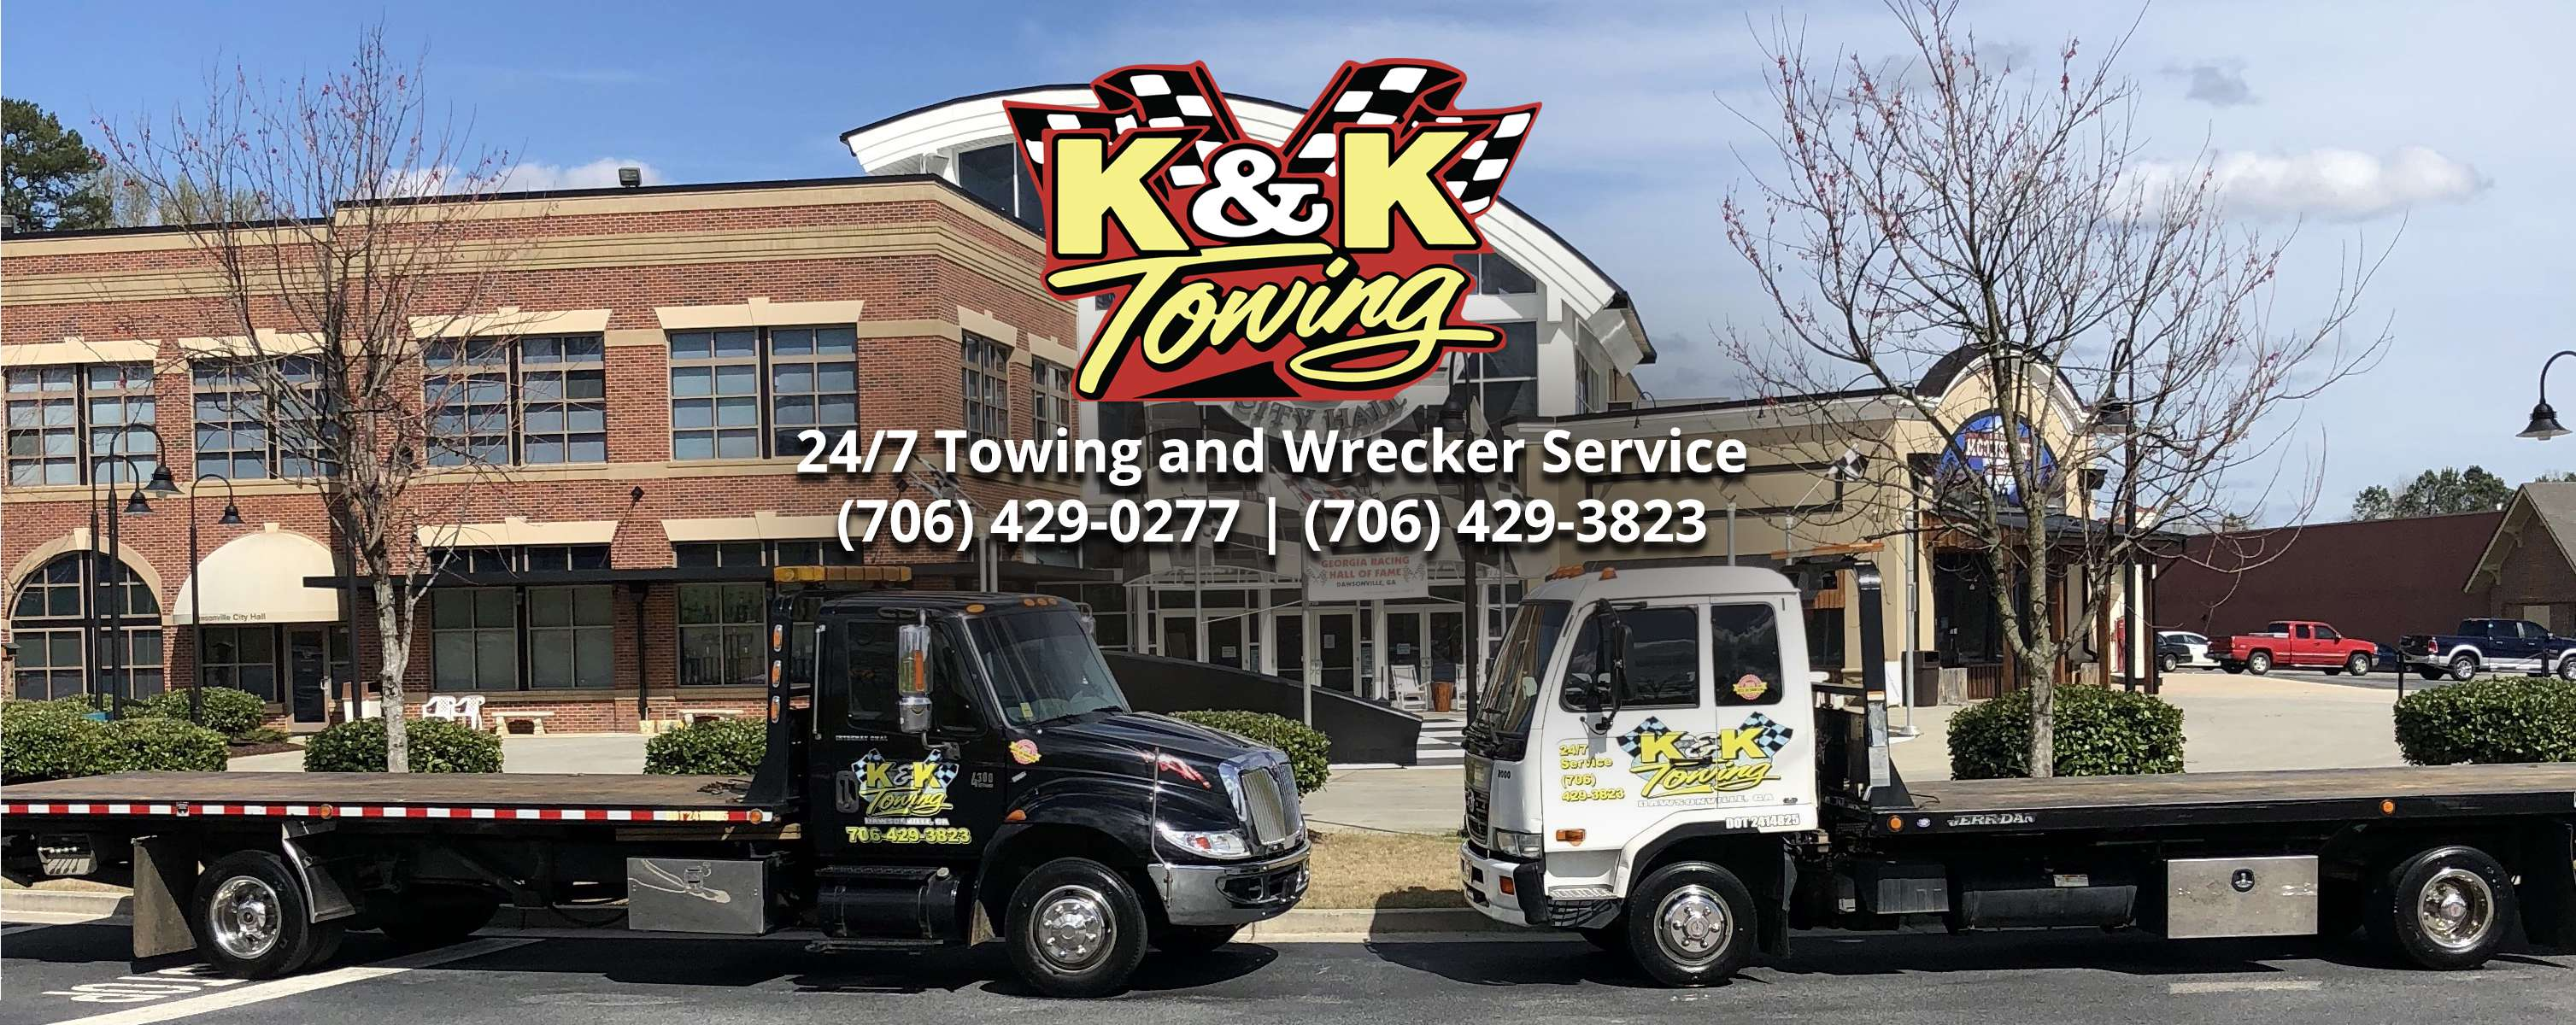 K&K Towing and Wrecker Services